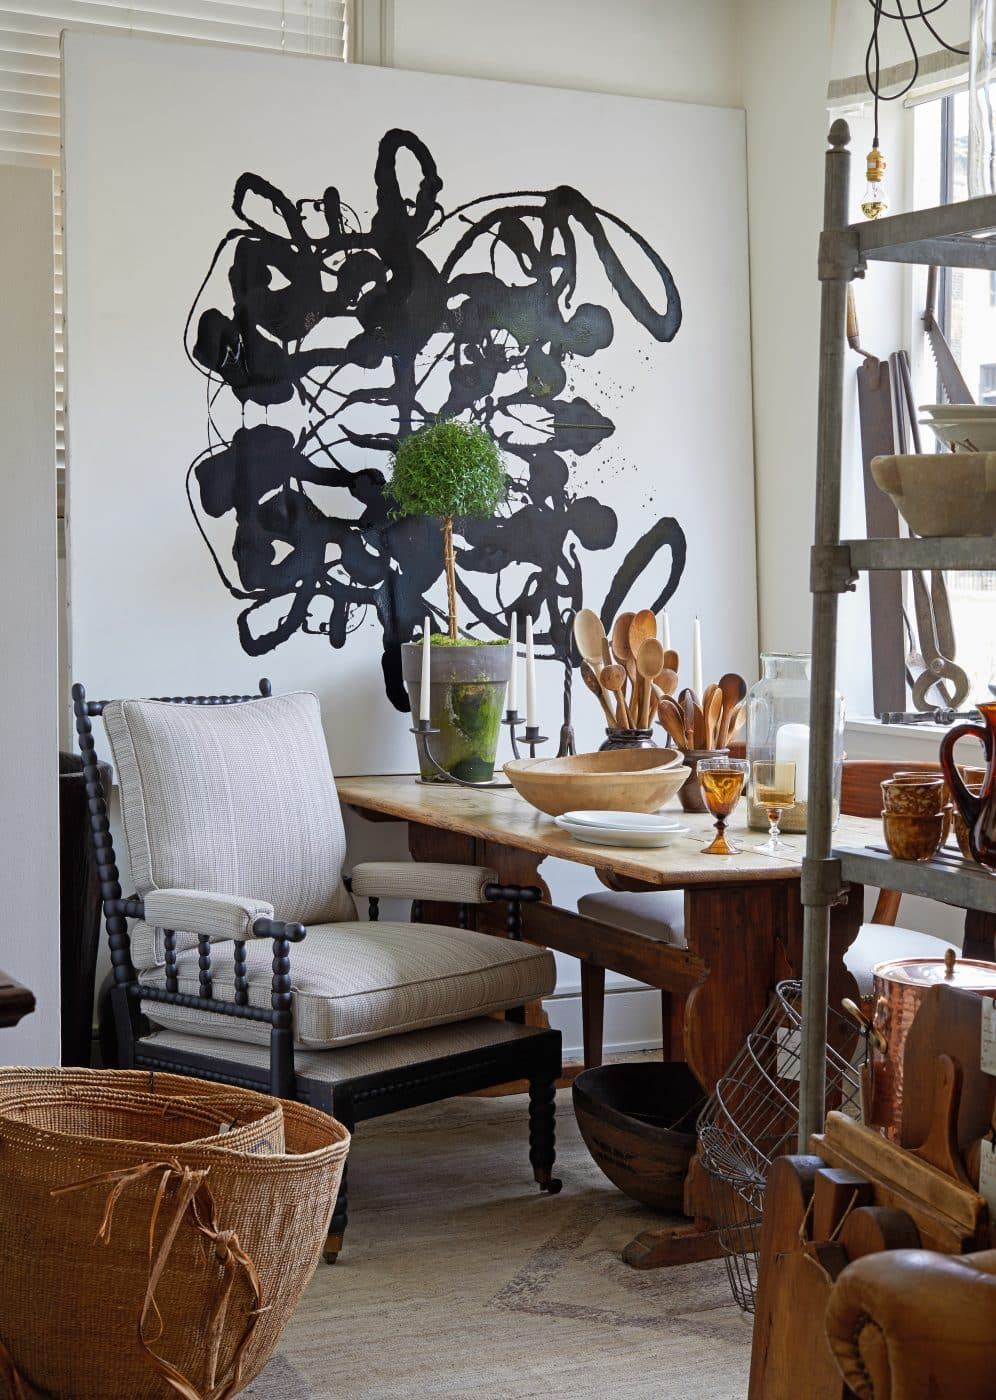 The early-20th-century French Zinc shelving unit and an 18th-century Swedish farmhouse table hold vessels like wooden serving bowls and glowing French copper pots